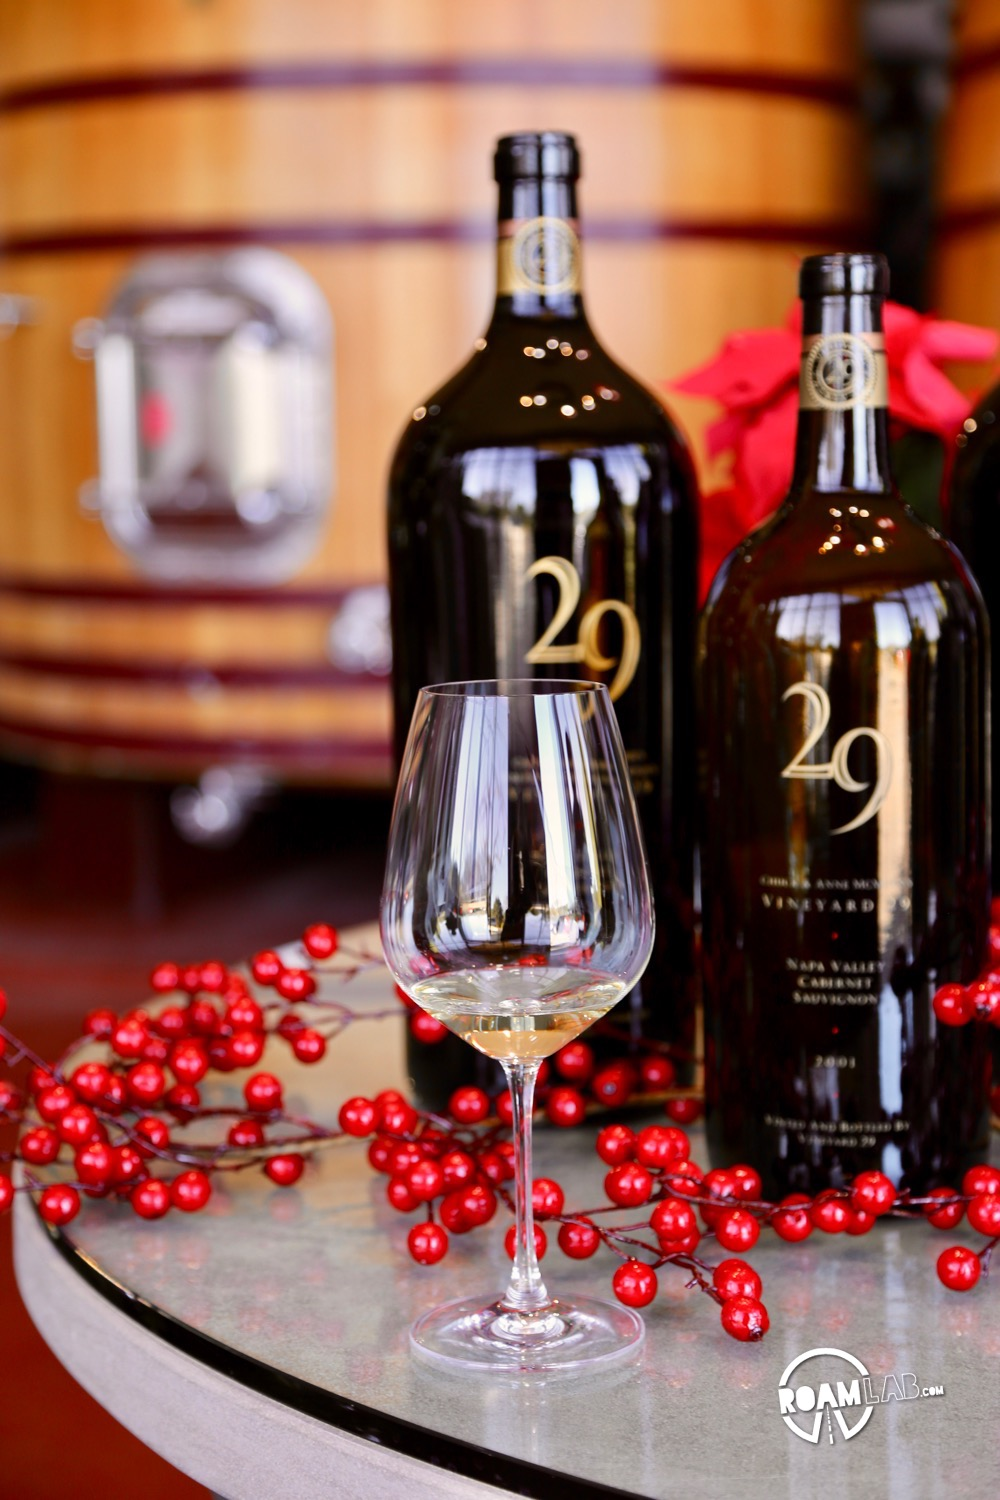 The consistently 90+ rated wines from Vineyard 29 are the product not only of prime location in Napa Valley but highly advanced technology.